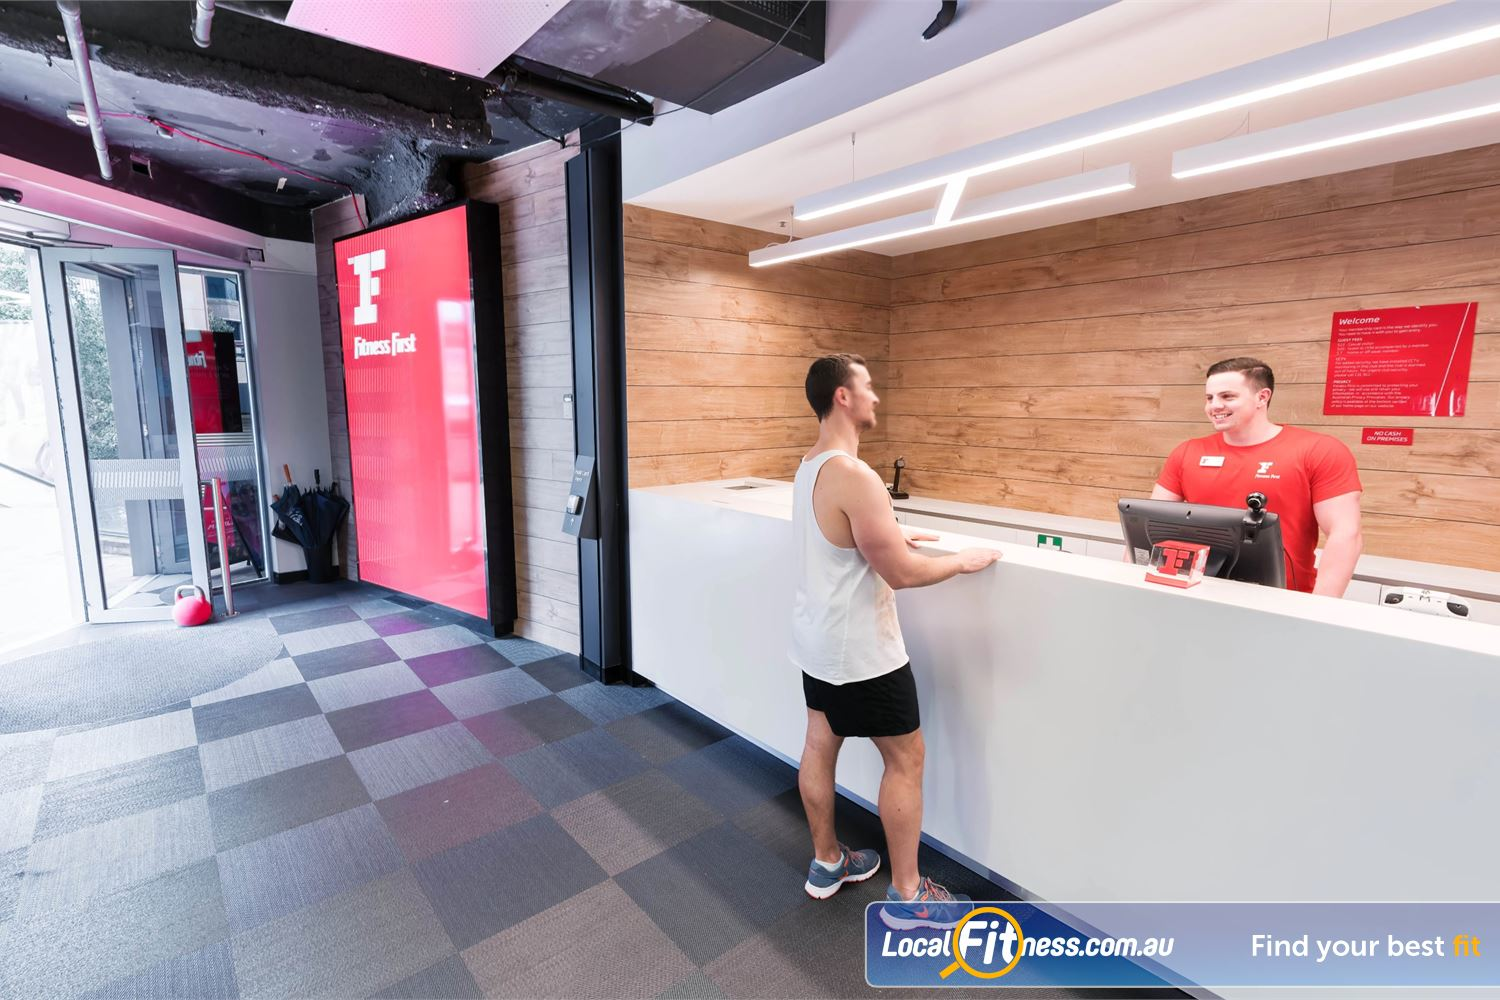 Fitness First Elizabeth Plaza North Sydney Our North Sydney gym team is ready to help you find your fit.